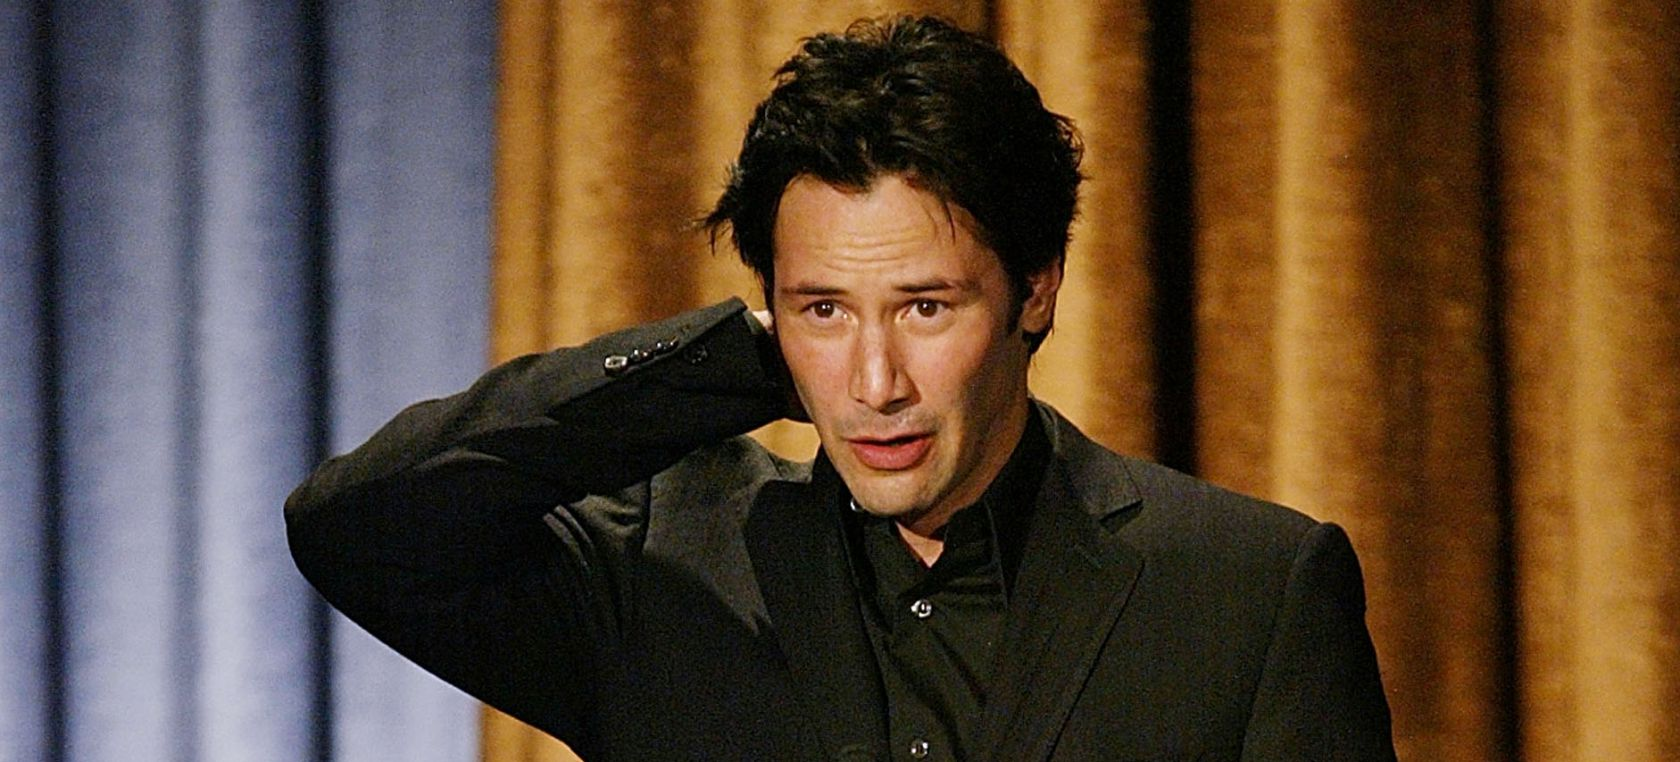 Keanu Reeves Ryan Reynolds Dedpool Marvel película crossover